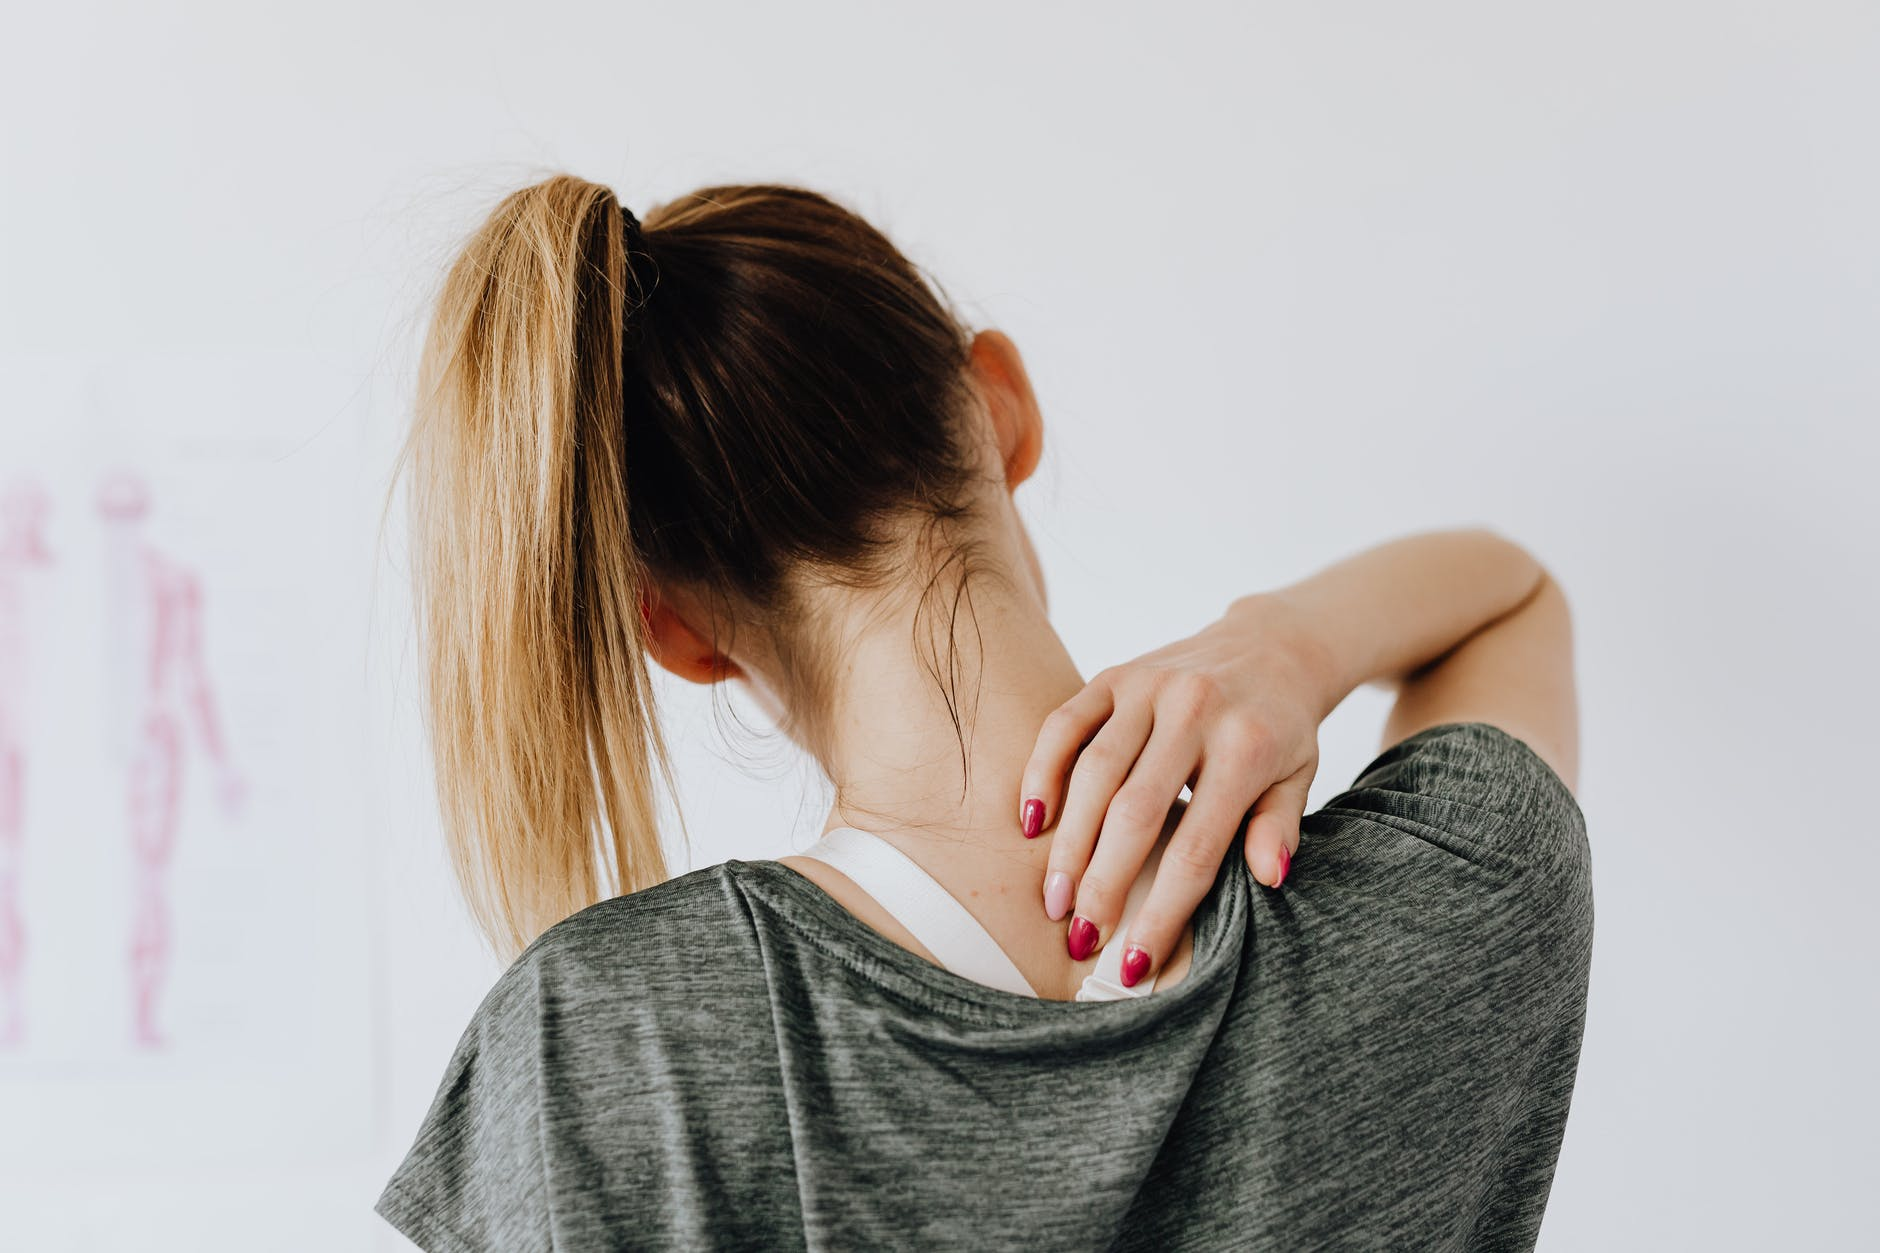 CBD Products for Back Pain – The Best Hemp Patches Reviewed